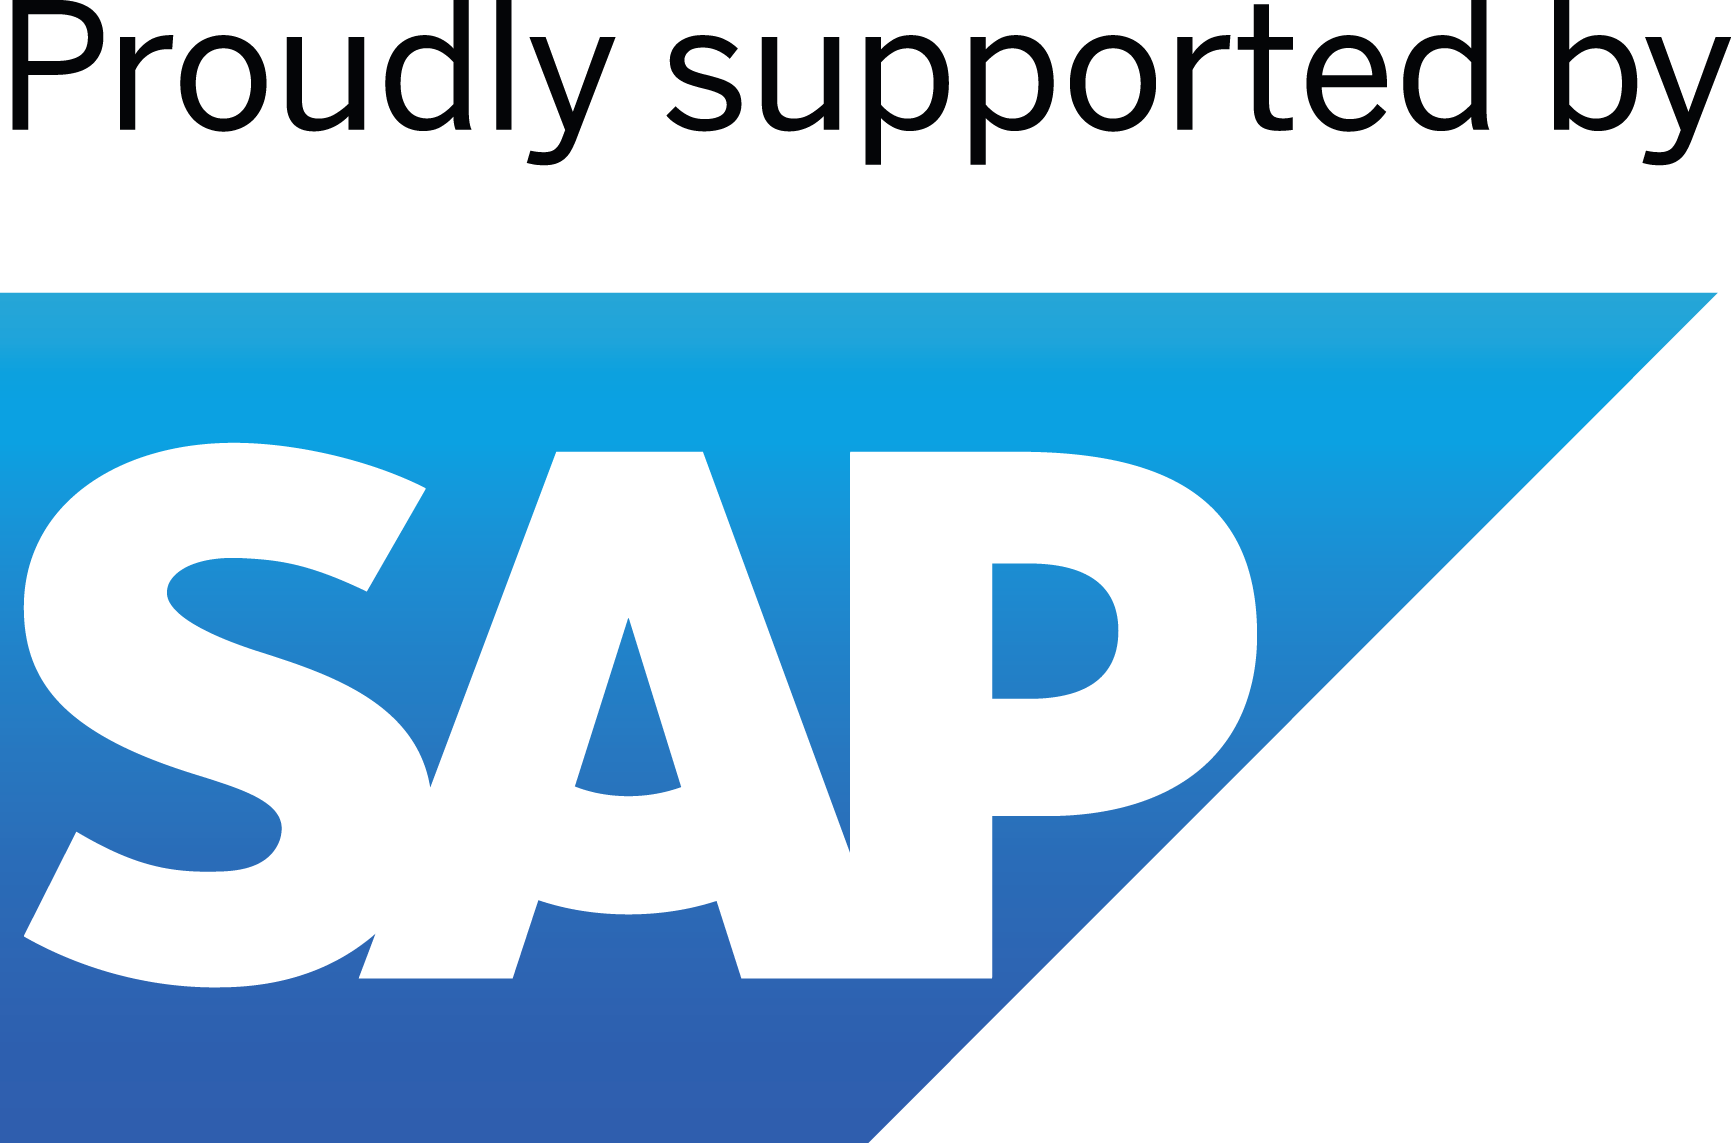 SAP scrn proudly supported by R pos